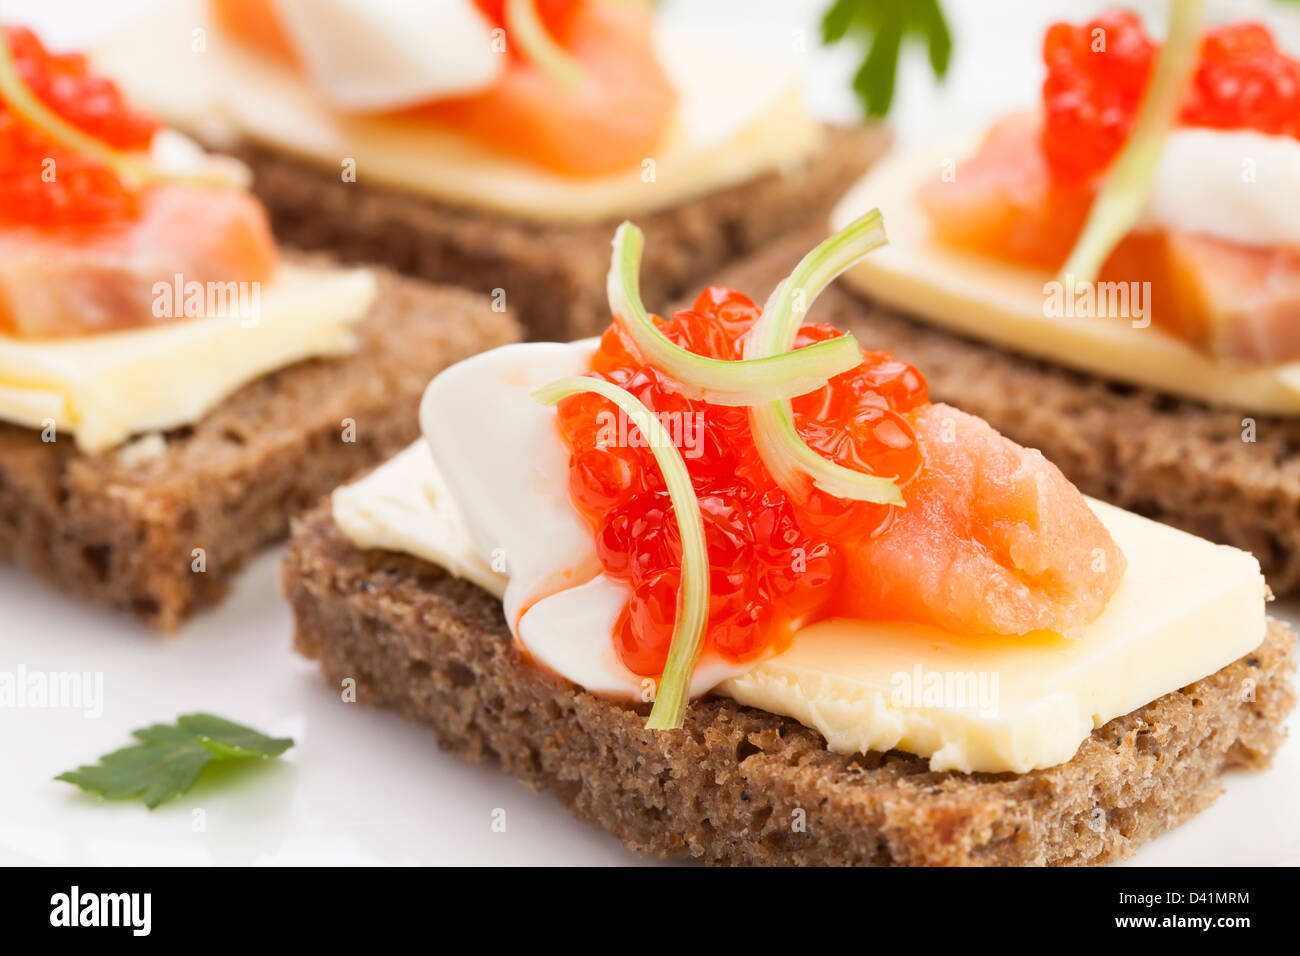 caviar salmon sandwiches on white - Stock Image